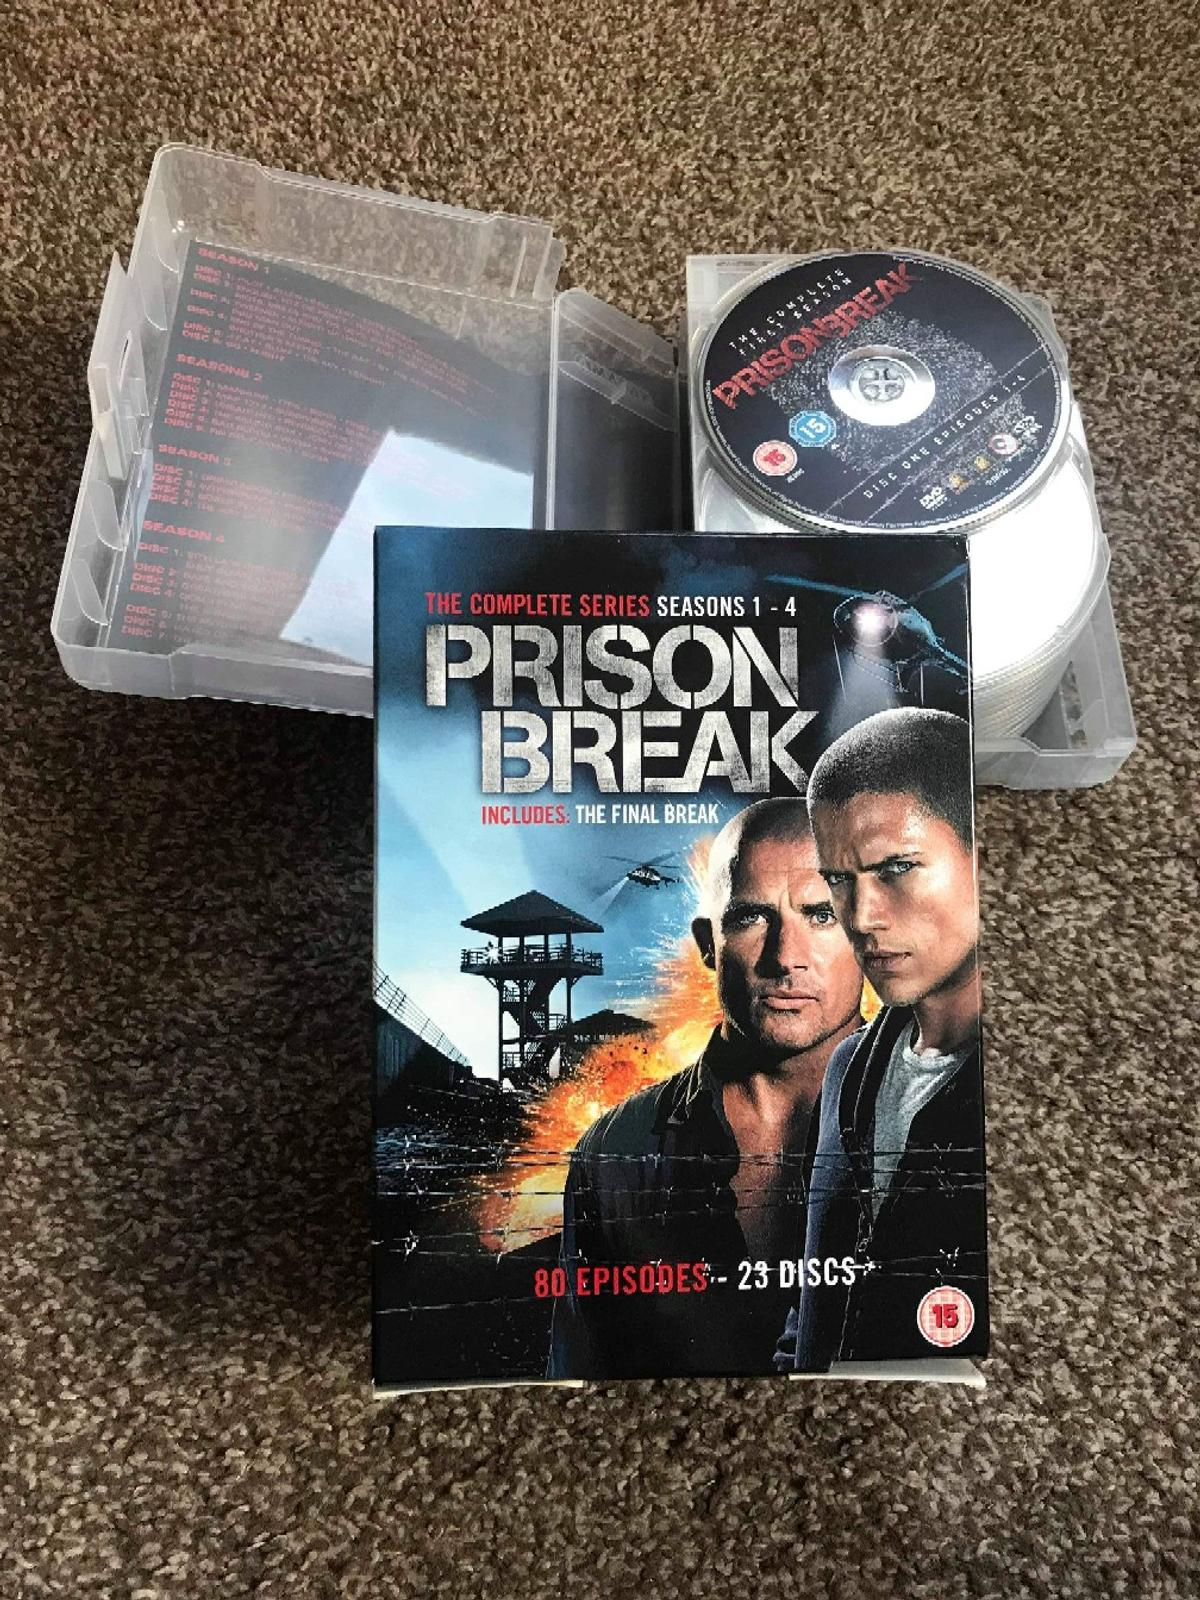 Prison Break Season 1 4 Box Set In Bl8 Elton For 25 00 For Sale Shpock